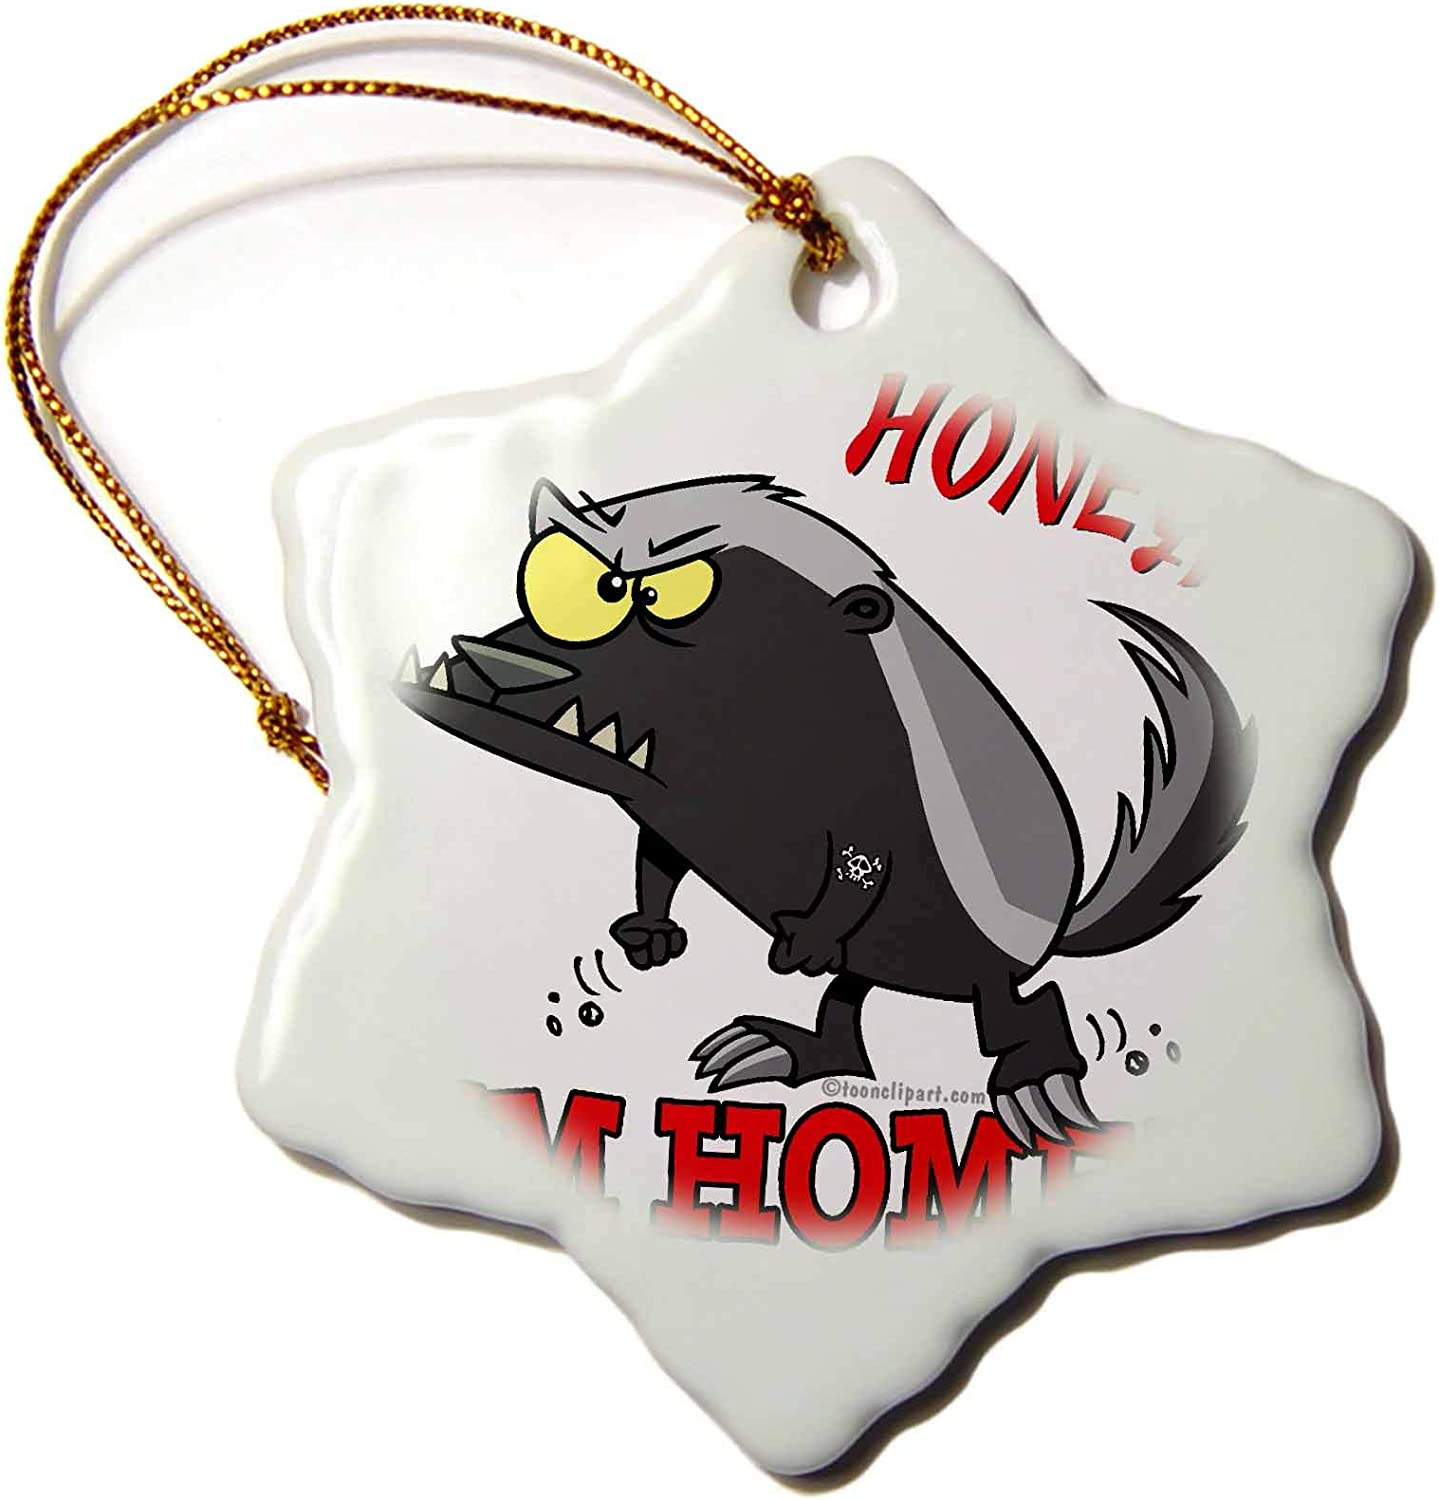 3dRose Dooni Designs Random Toons - Honey Badger Honey Im Home - Ornaments (ORN_104211_1)